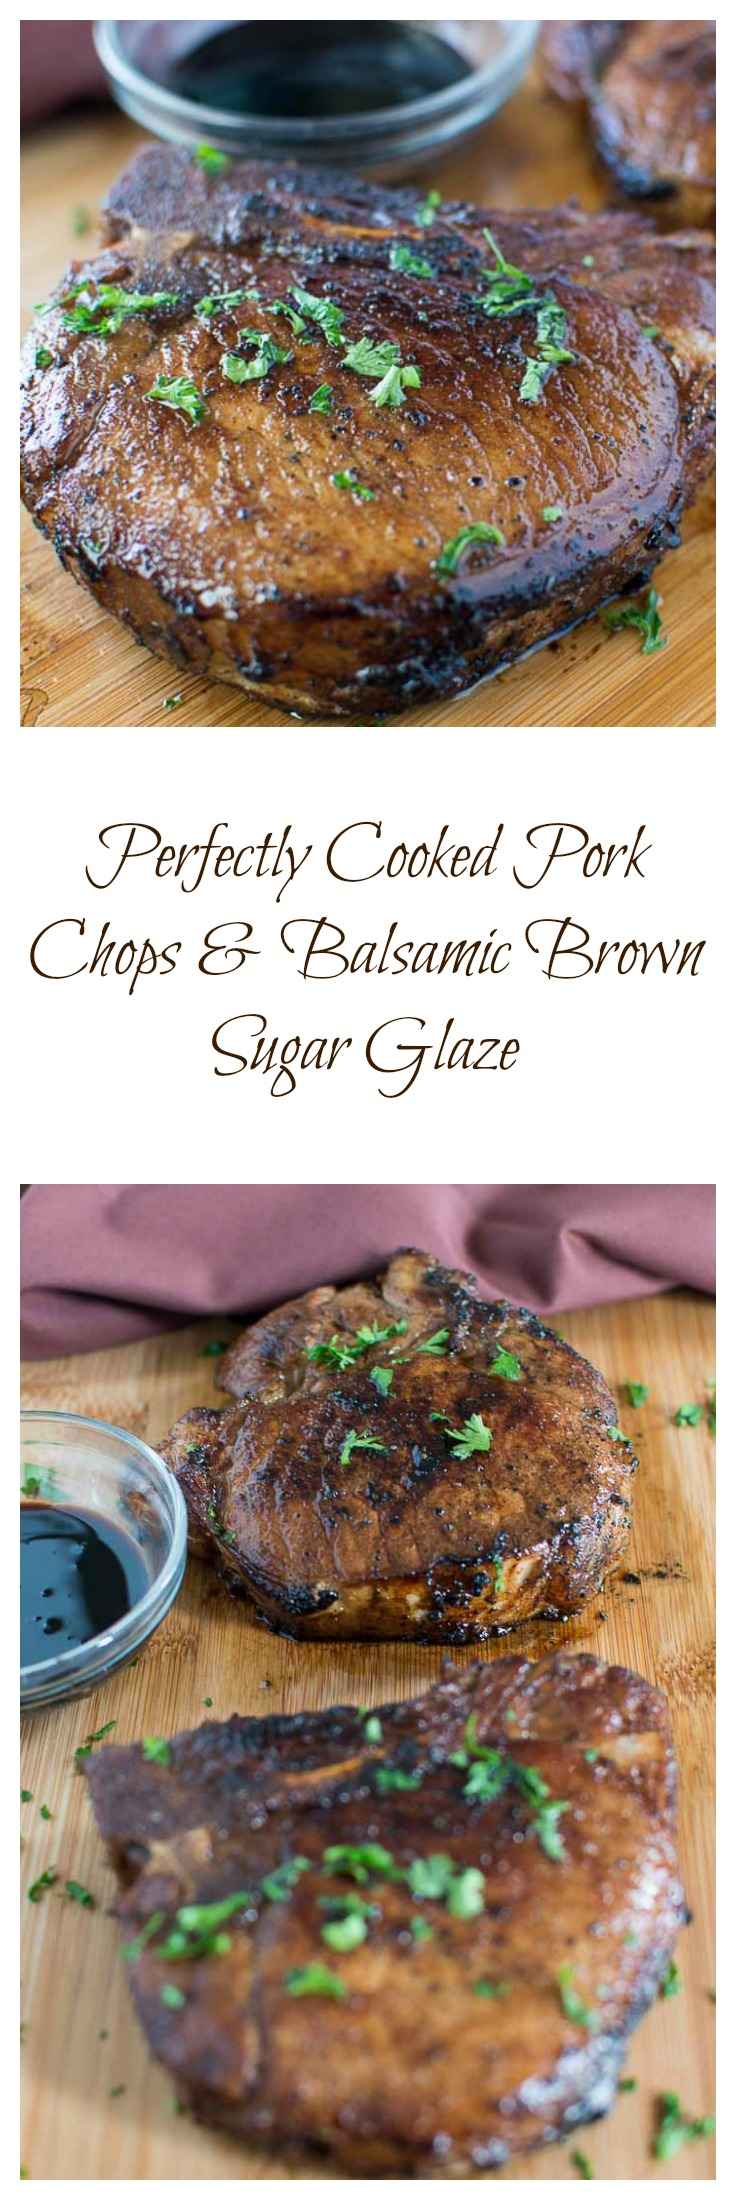 Perfectly Cooked Pork Chops With Balsamic Brown Sugar Glaze